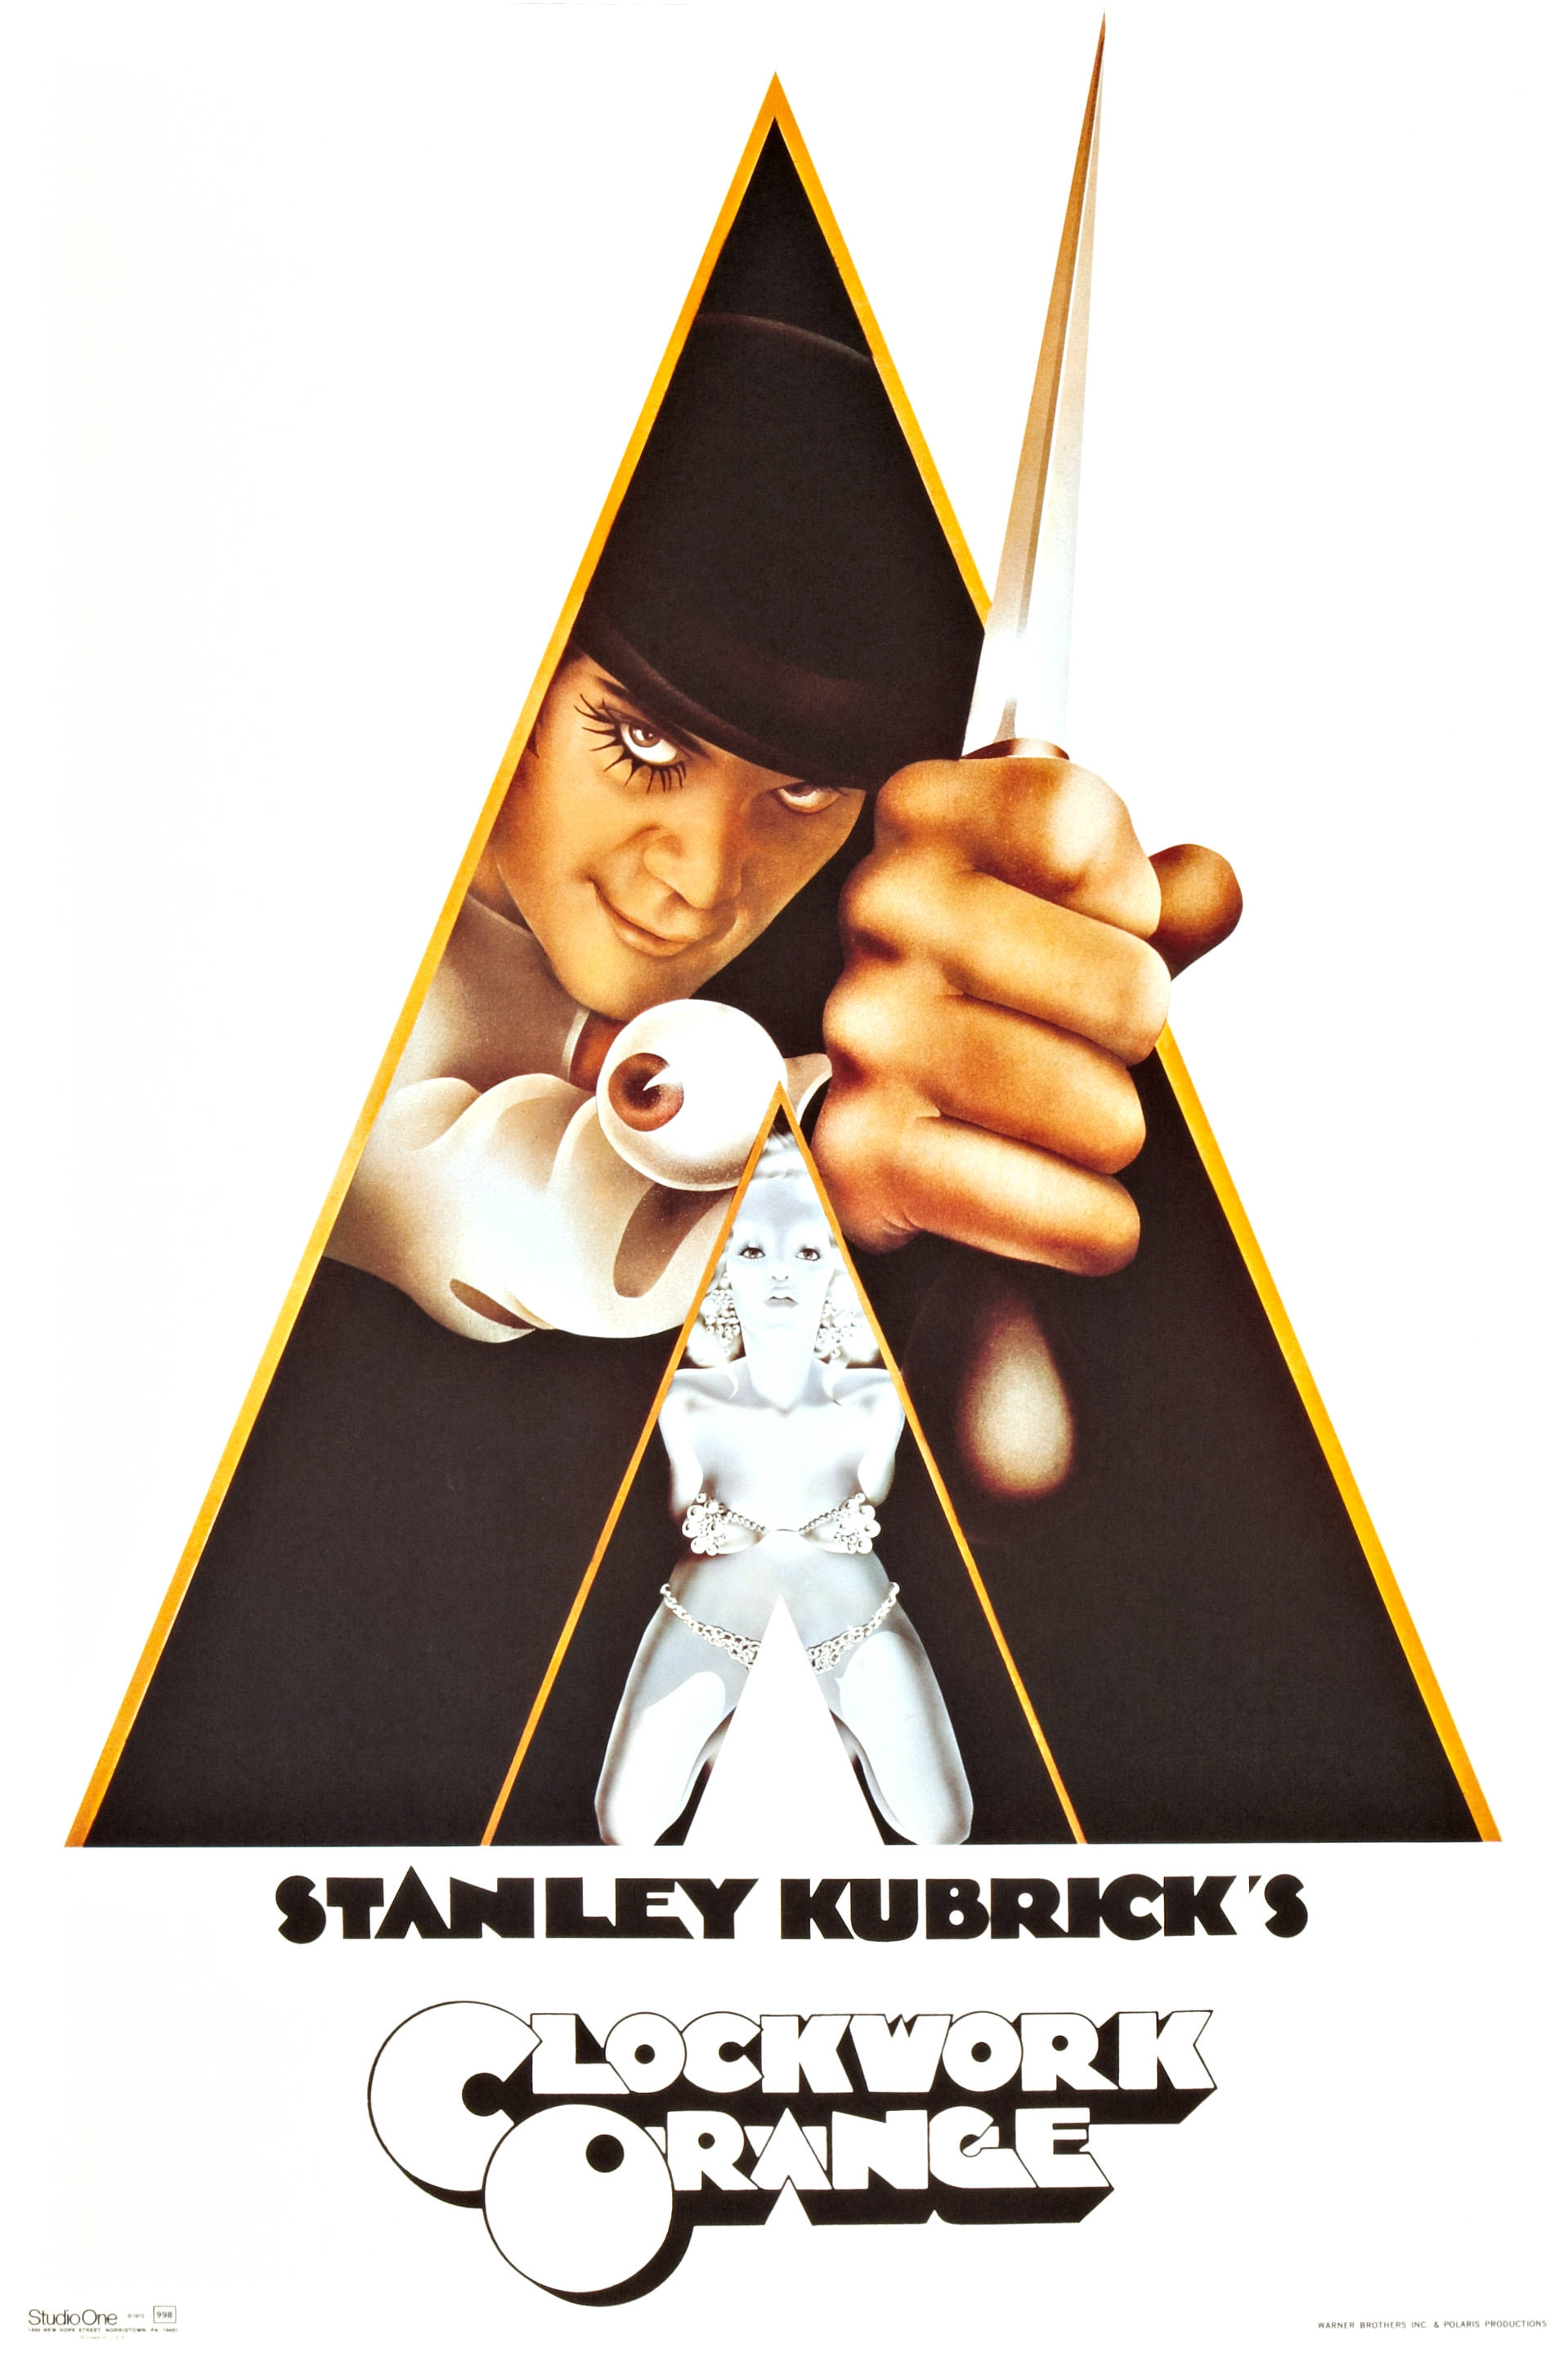 a clockwork orange Find a various - stanley kubrick's a clockwork orange (music from the  soundtrack) first pressing or reissue complete your various collection shop  vinyl and.